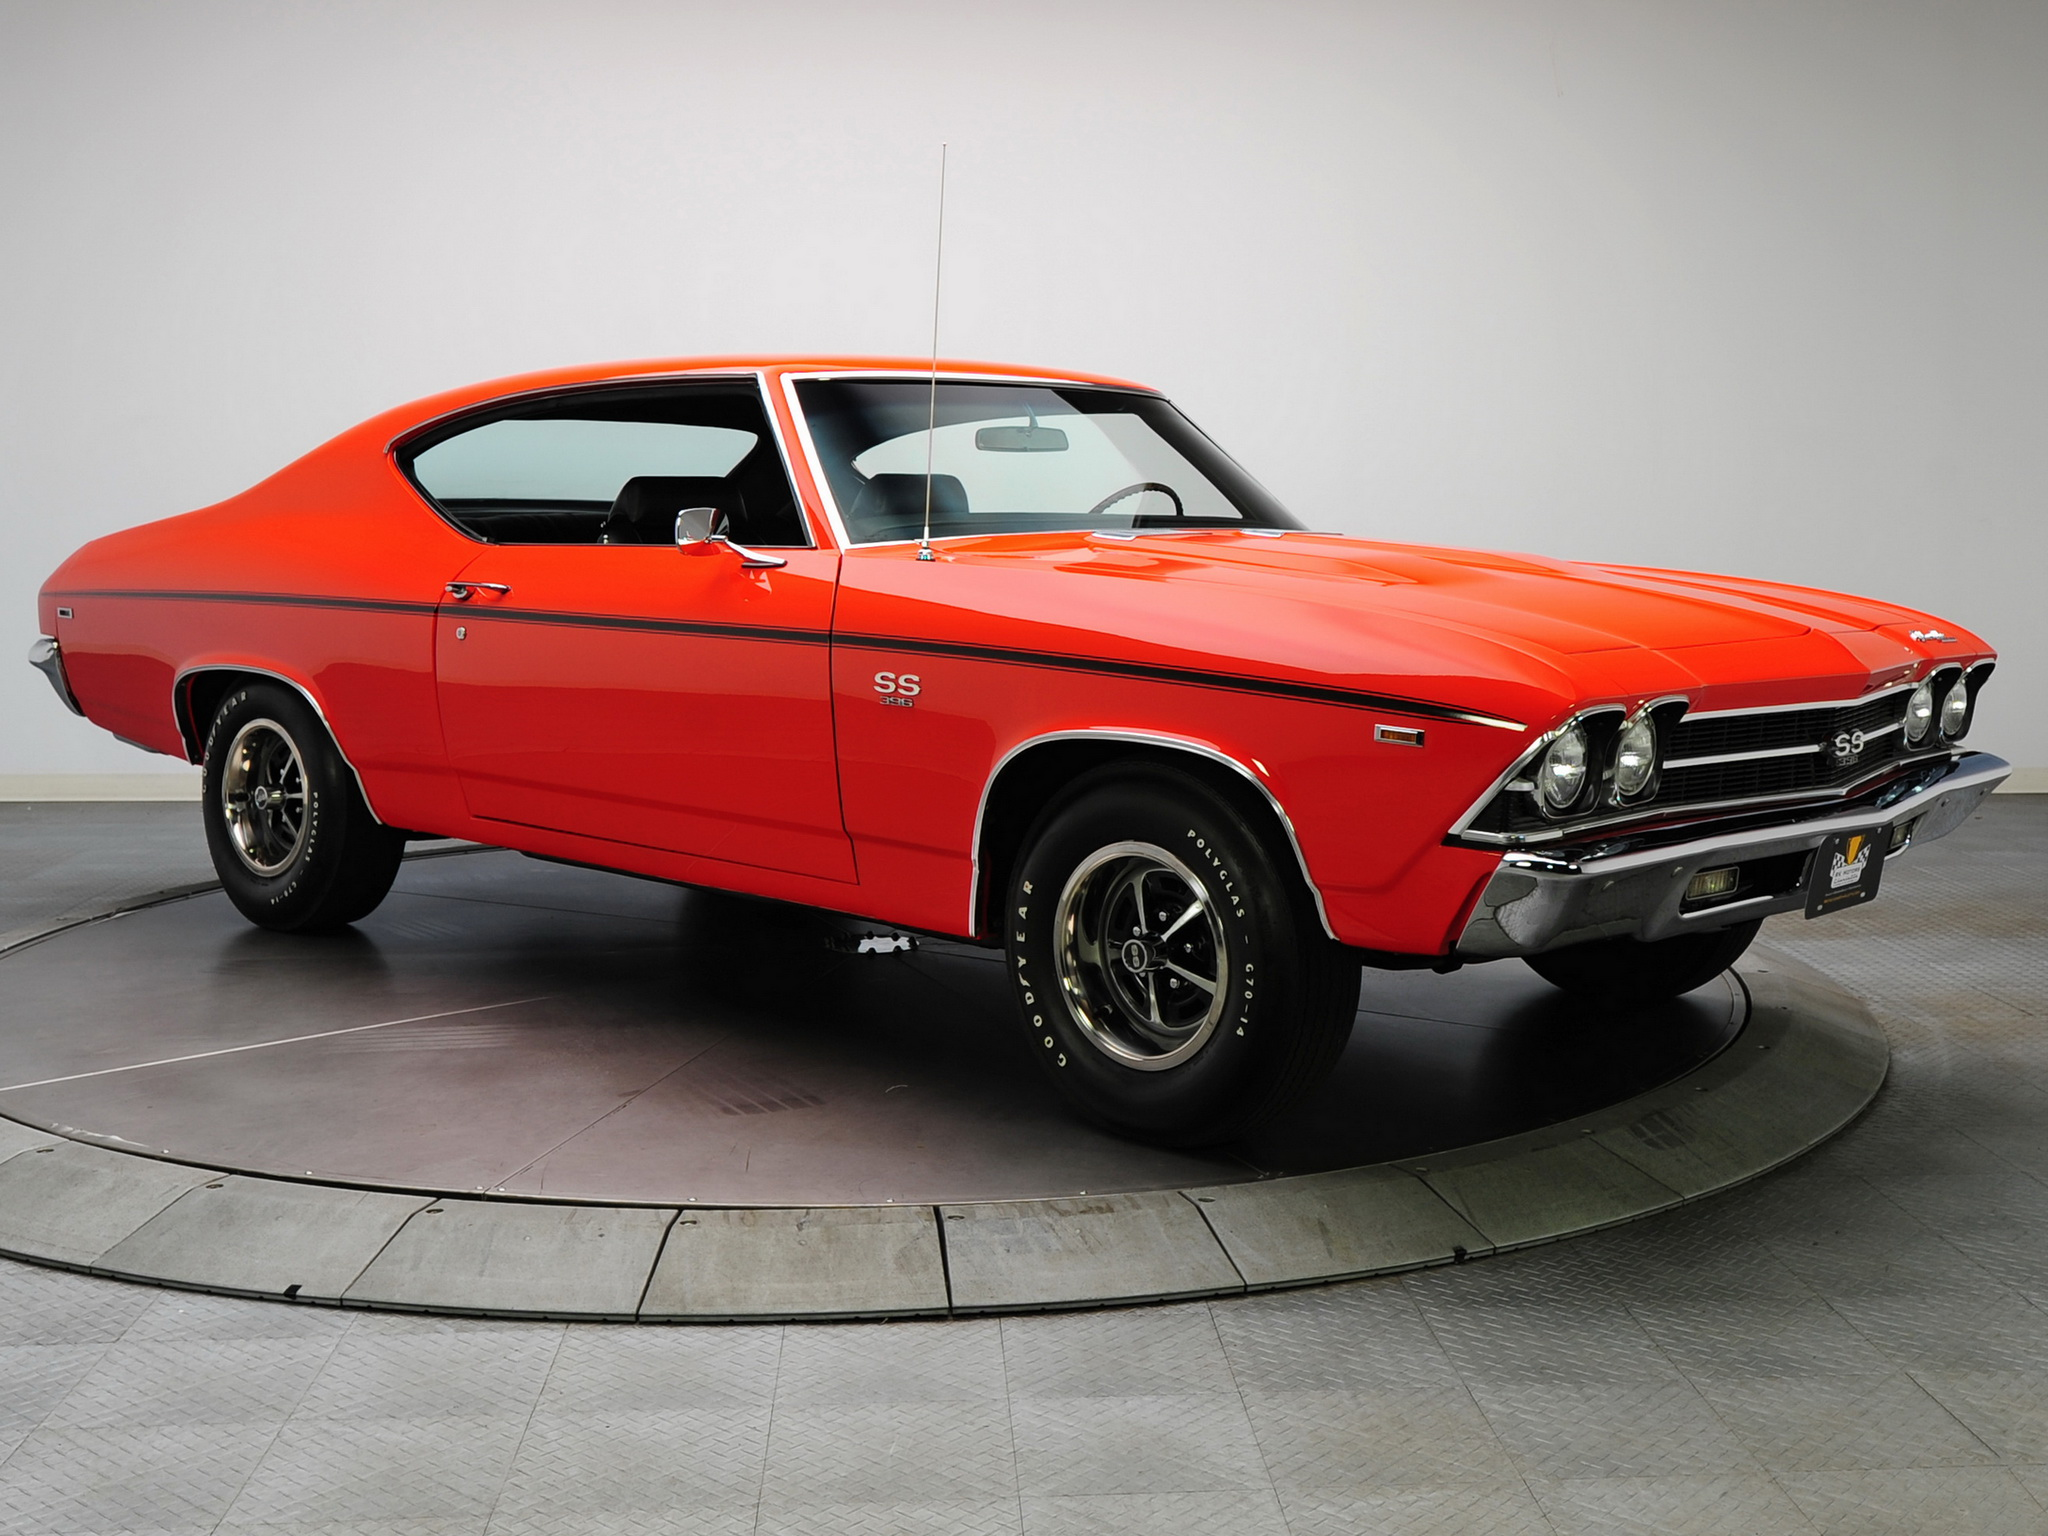 Chevelle S S 396 L34 Hardtop Coupe muscle classic wallpaper background 2048x1536